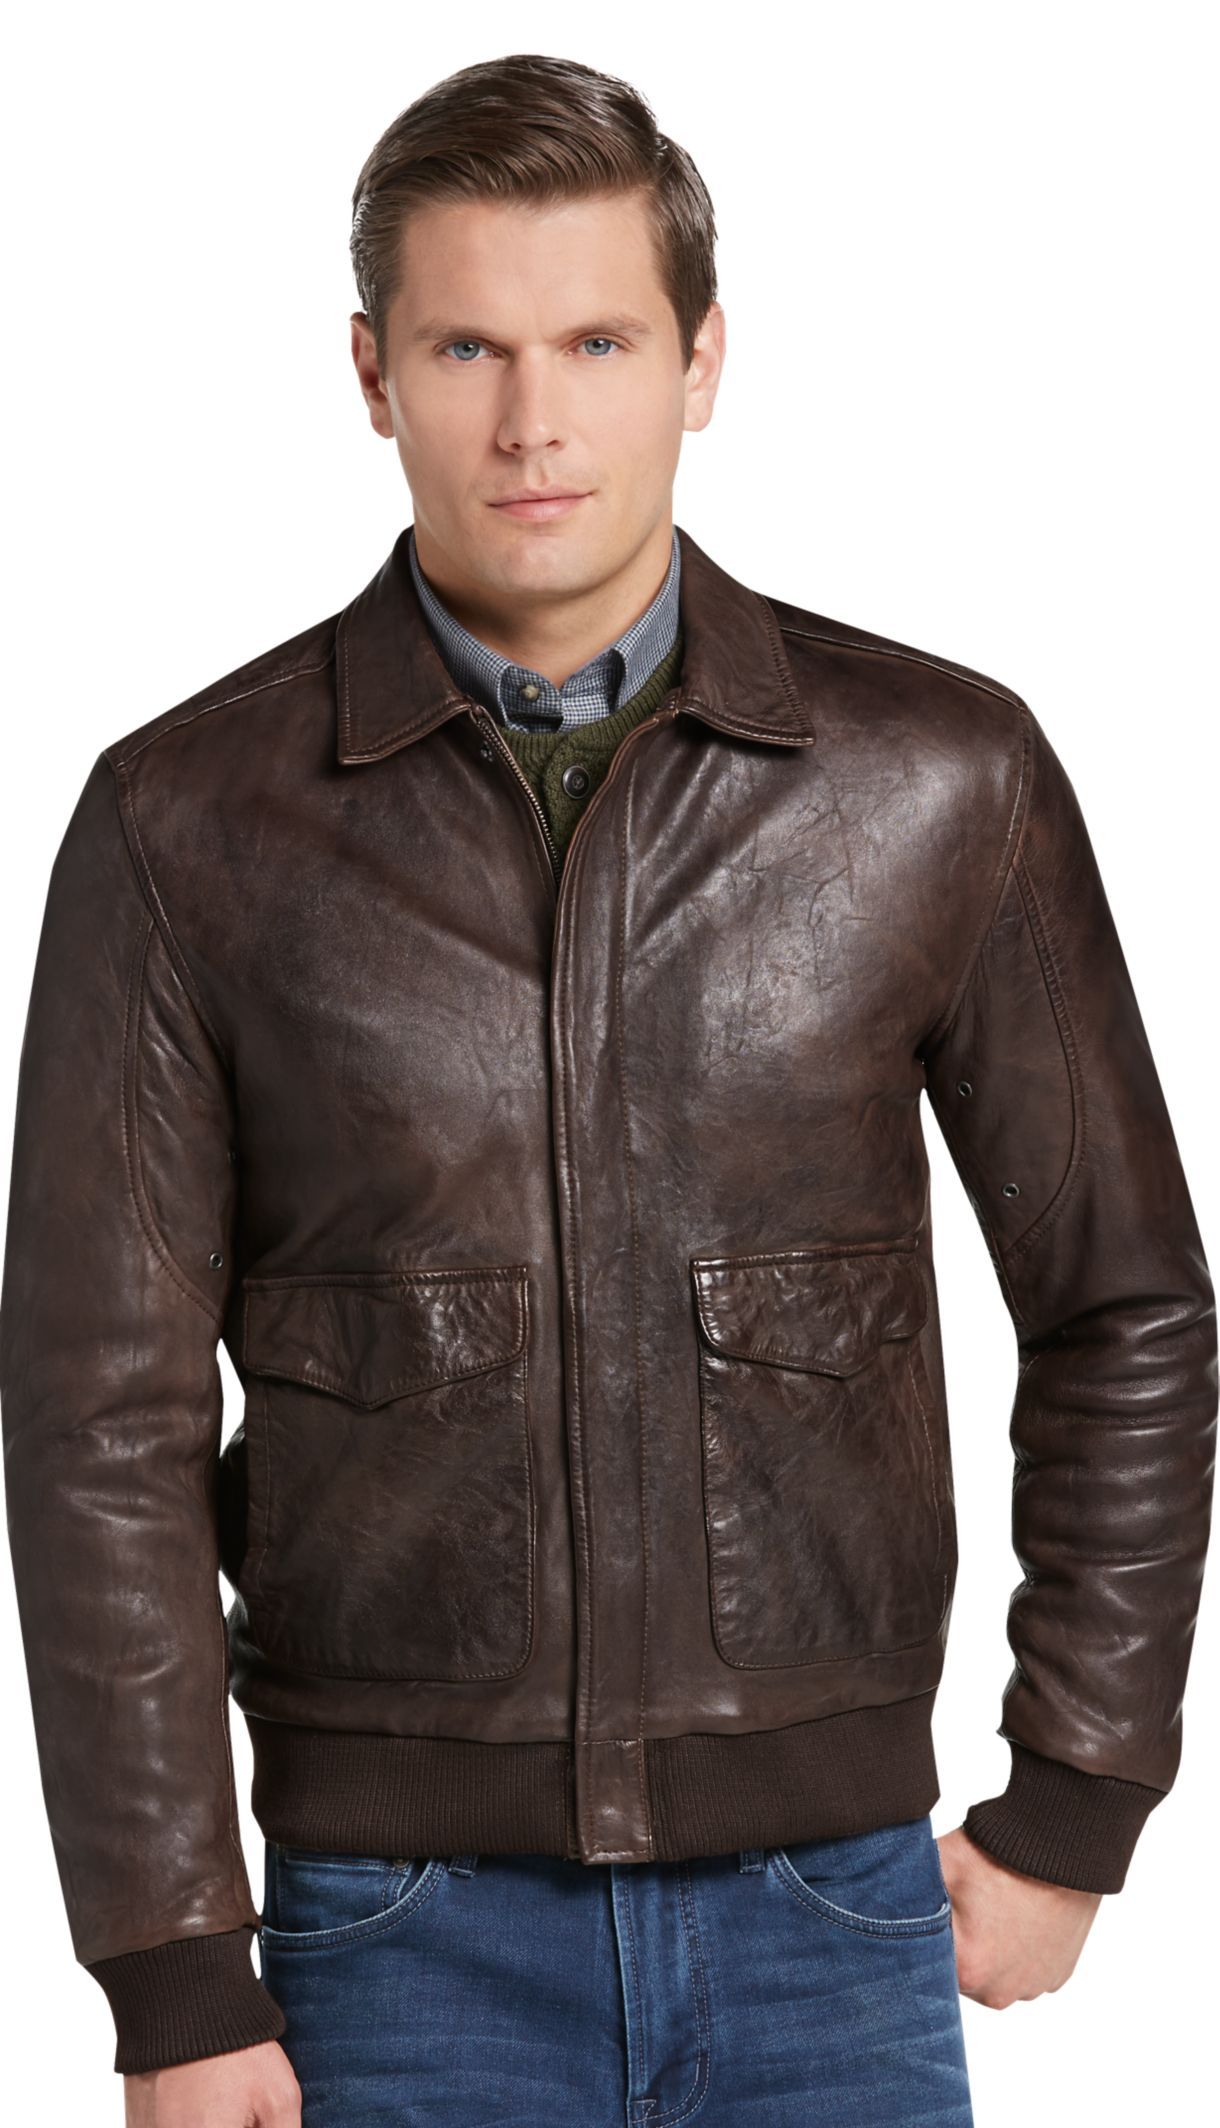 1905 Collection Tailored Fit Leather Bomber Jacket 1905 Outerwear Jos A Bank Mens Leather Bomber Jacket Leather Jacket Leather Bomber [ 2128 x 1220 Pixel ]